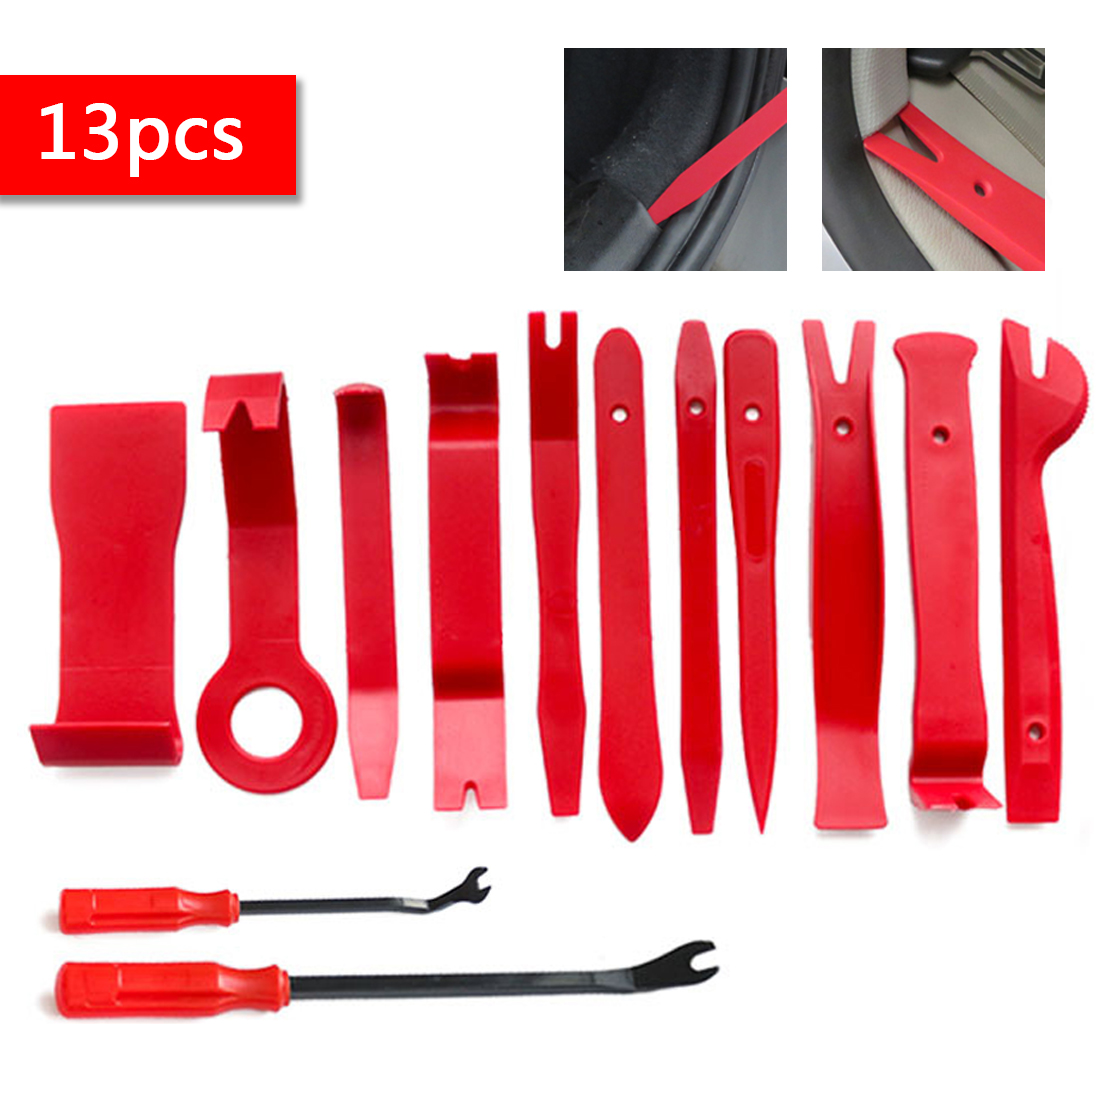 13pcs Pry Disassembly Tool Interior Door Clip Panel Trim Dashboard Removal Tool Auto Car Opening Repair Tool Hand Tool Kit cutting mat